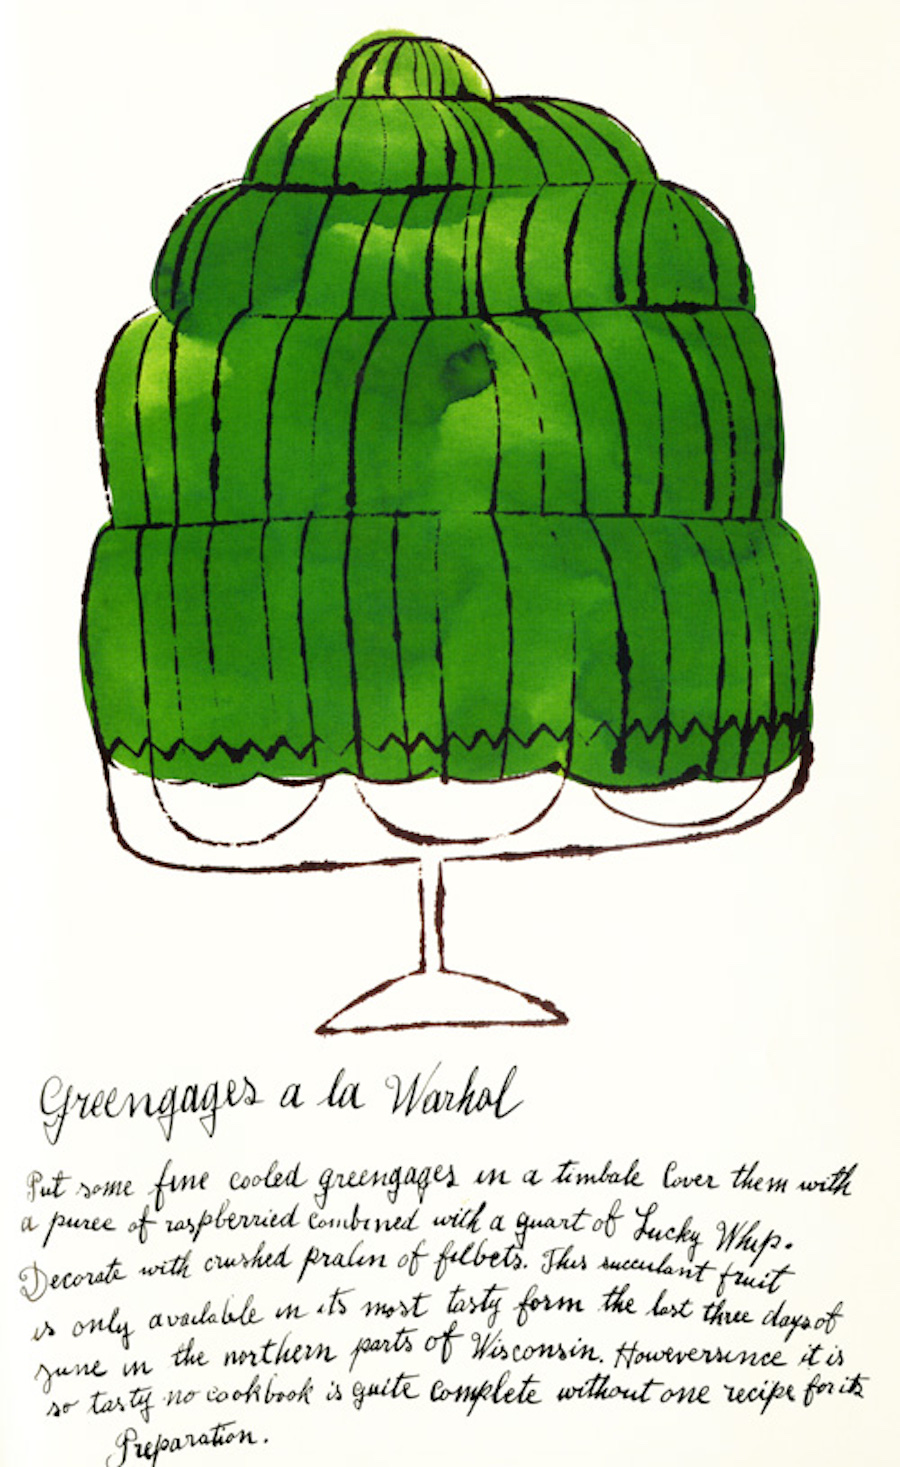 Greengages a la Warhol by Andy Warhol